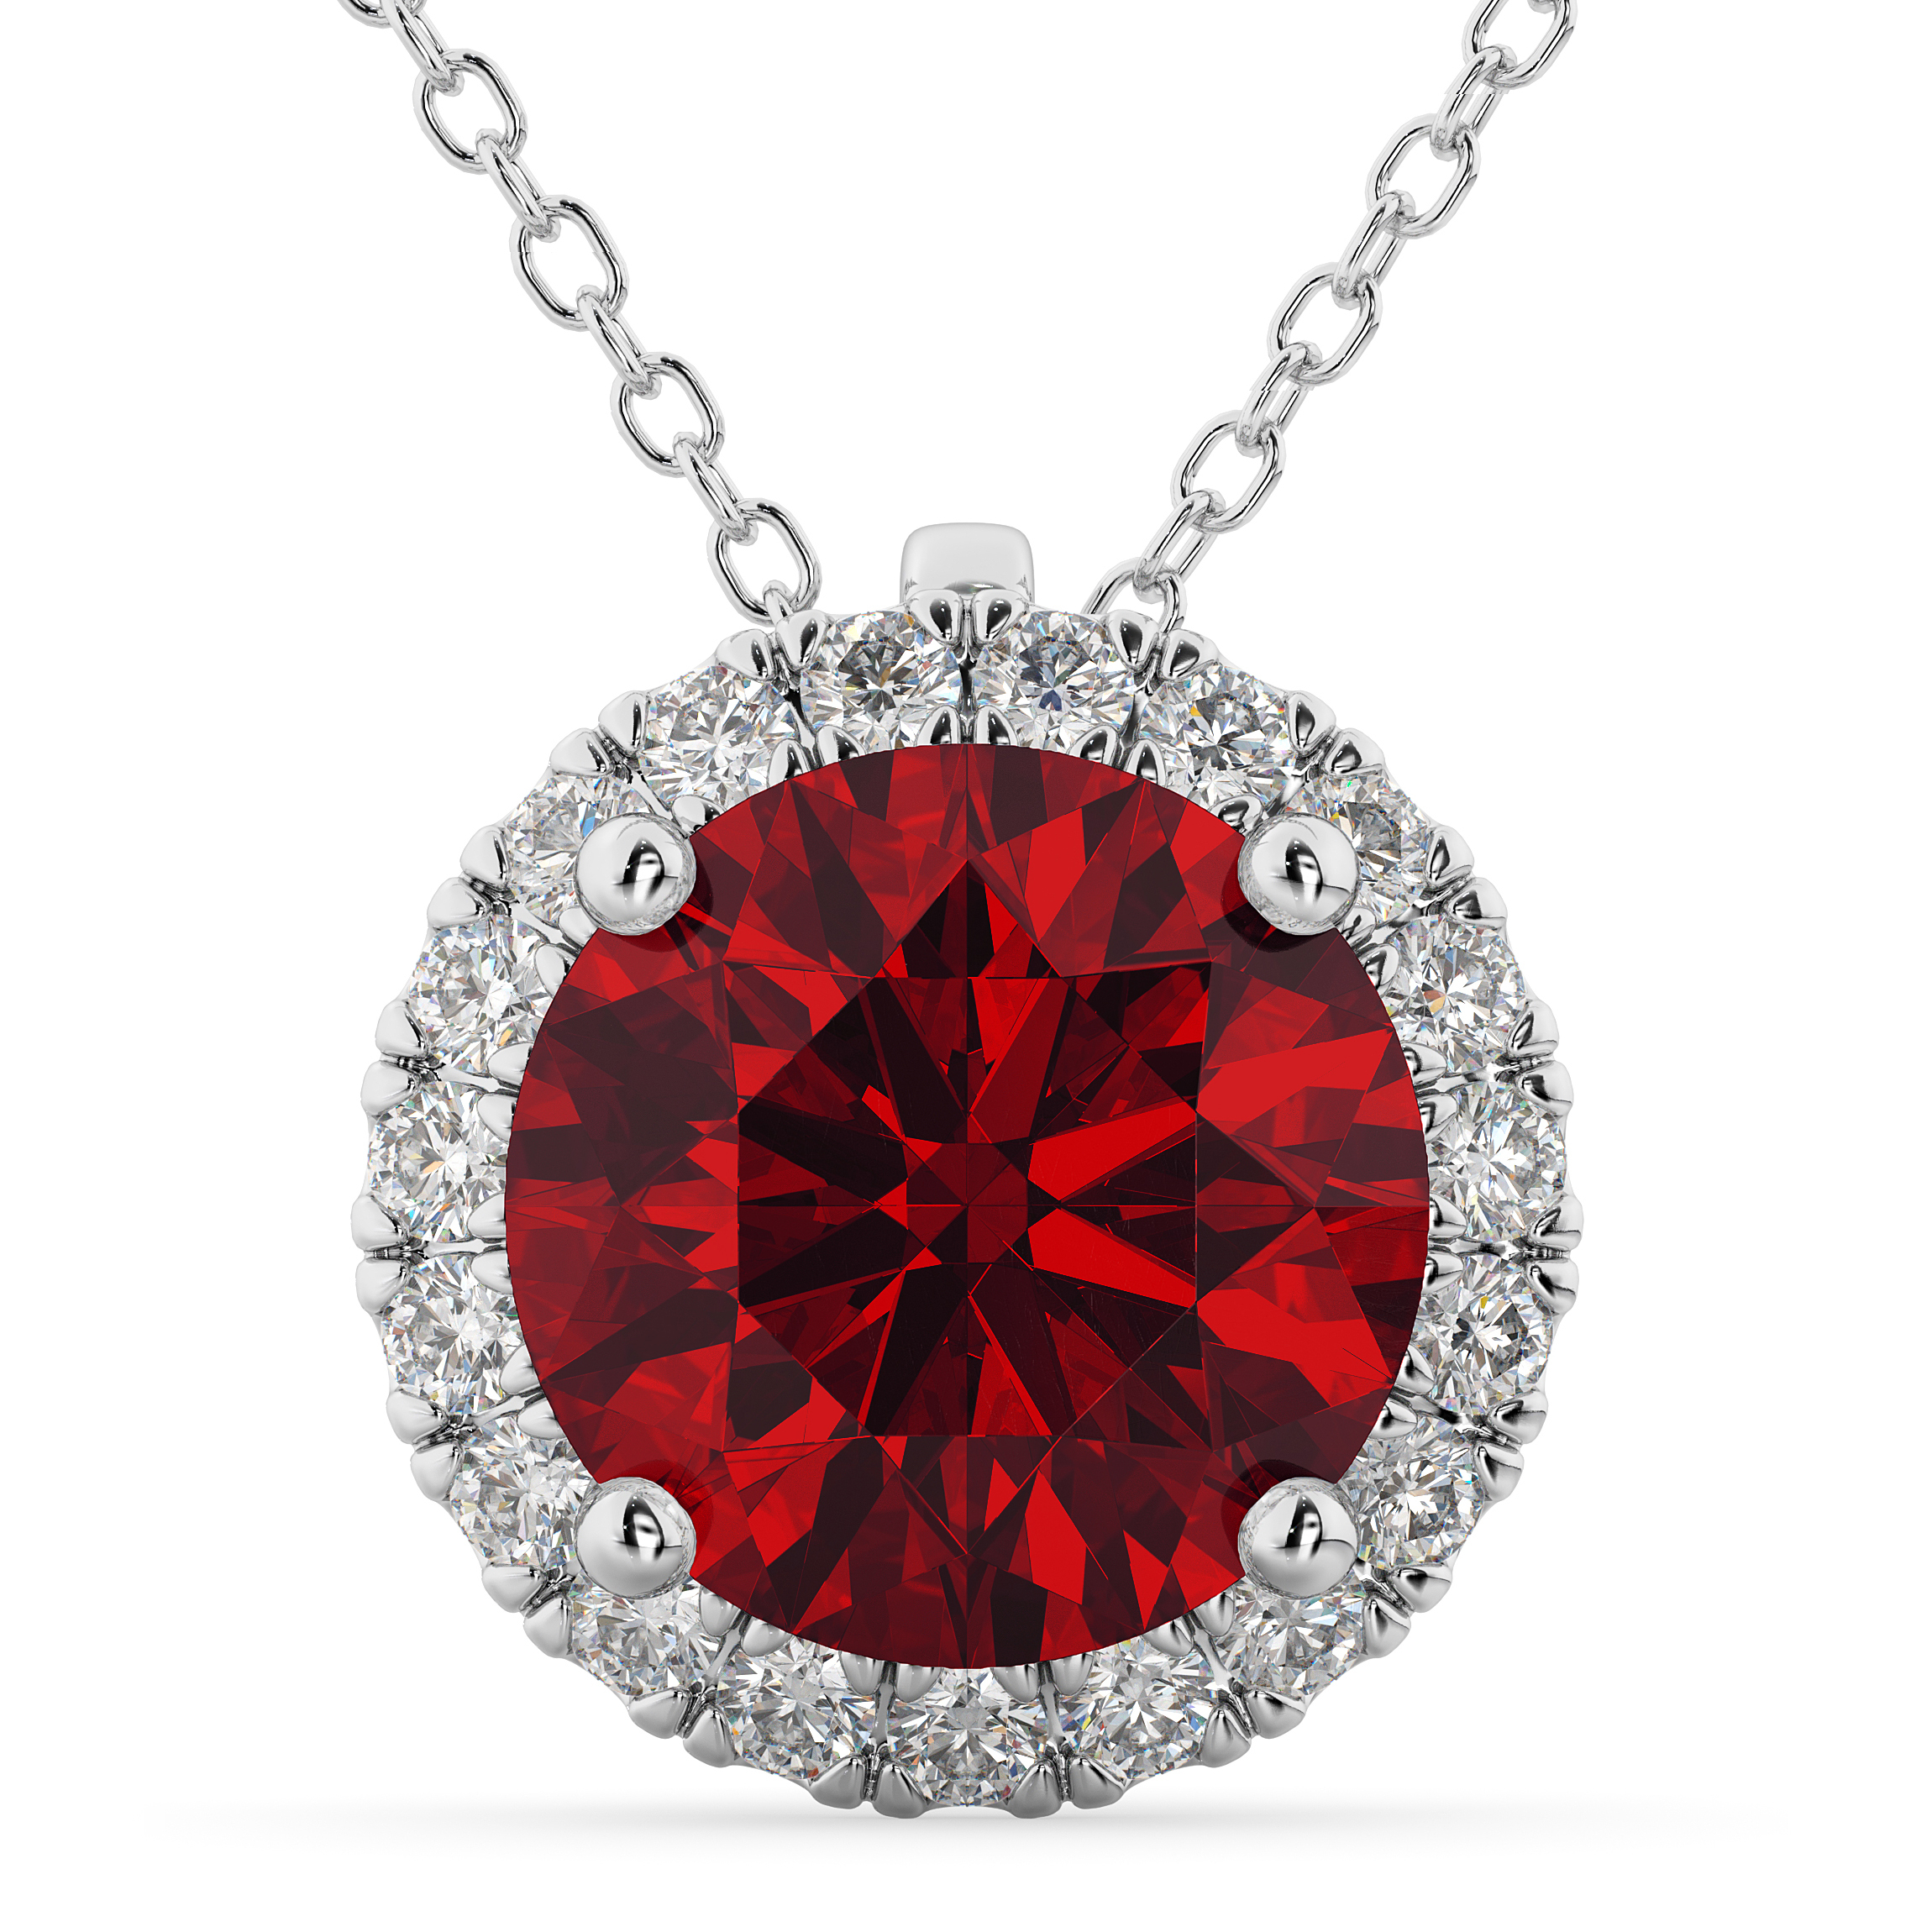 Halo Round Ruby & Diamond Pendant Necklace 14k White Gold (2.59ct) Pertaining To Most Recent Round Sparkle Halo Necklaces (Gallery 8 of 25)